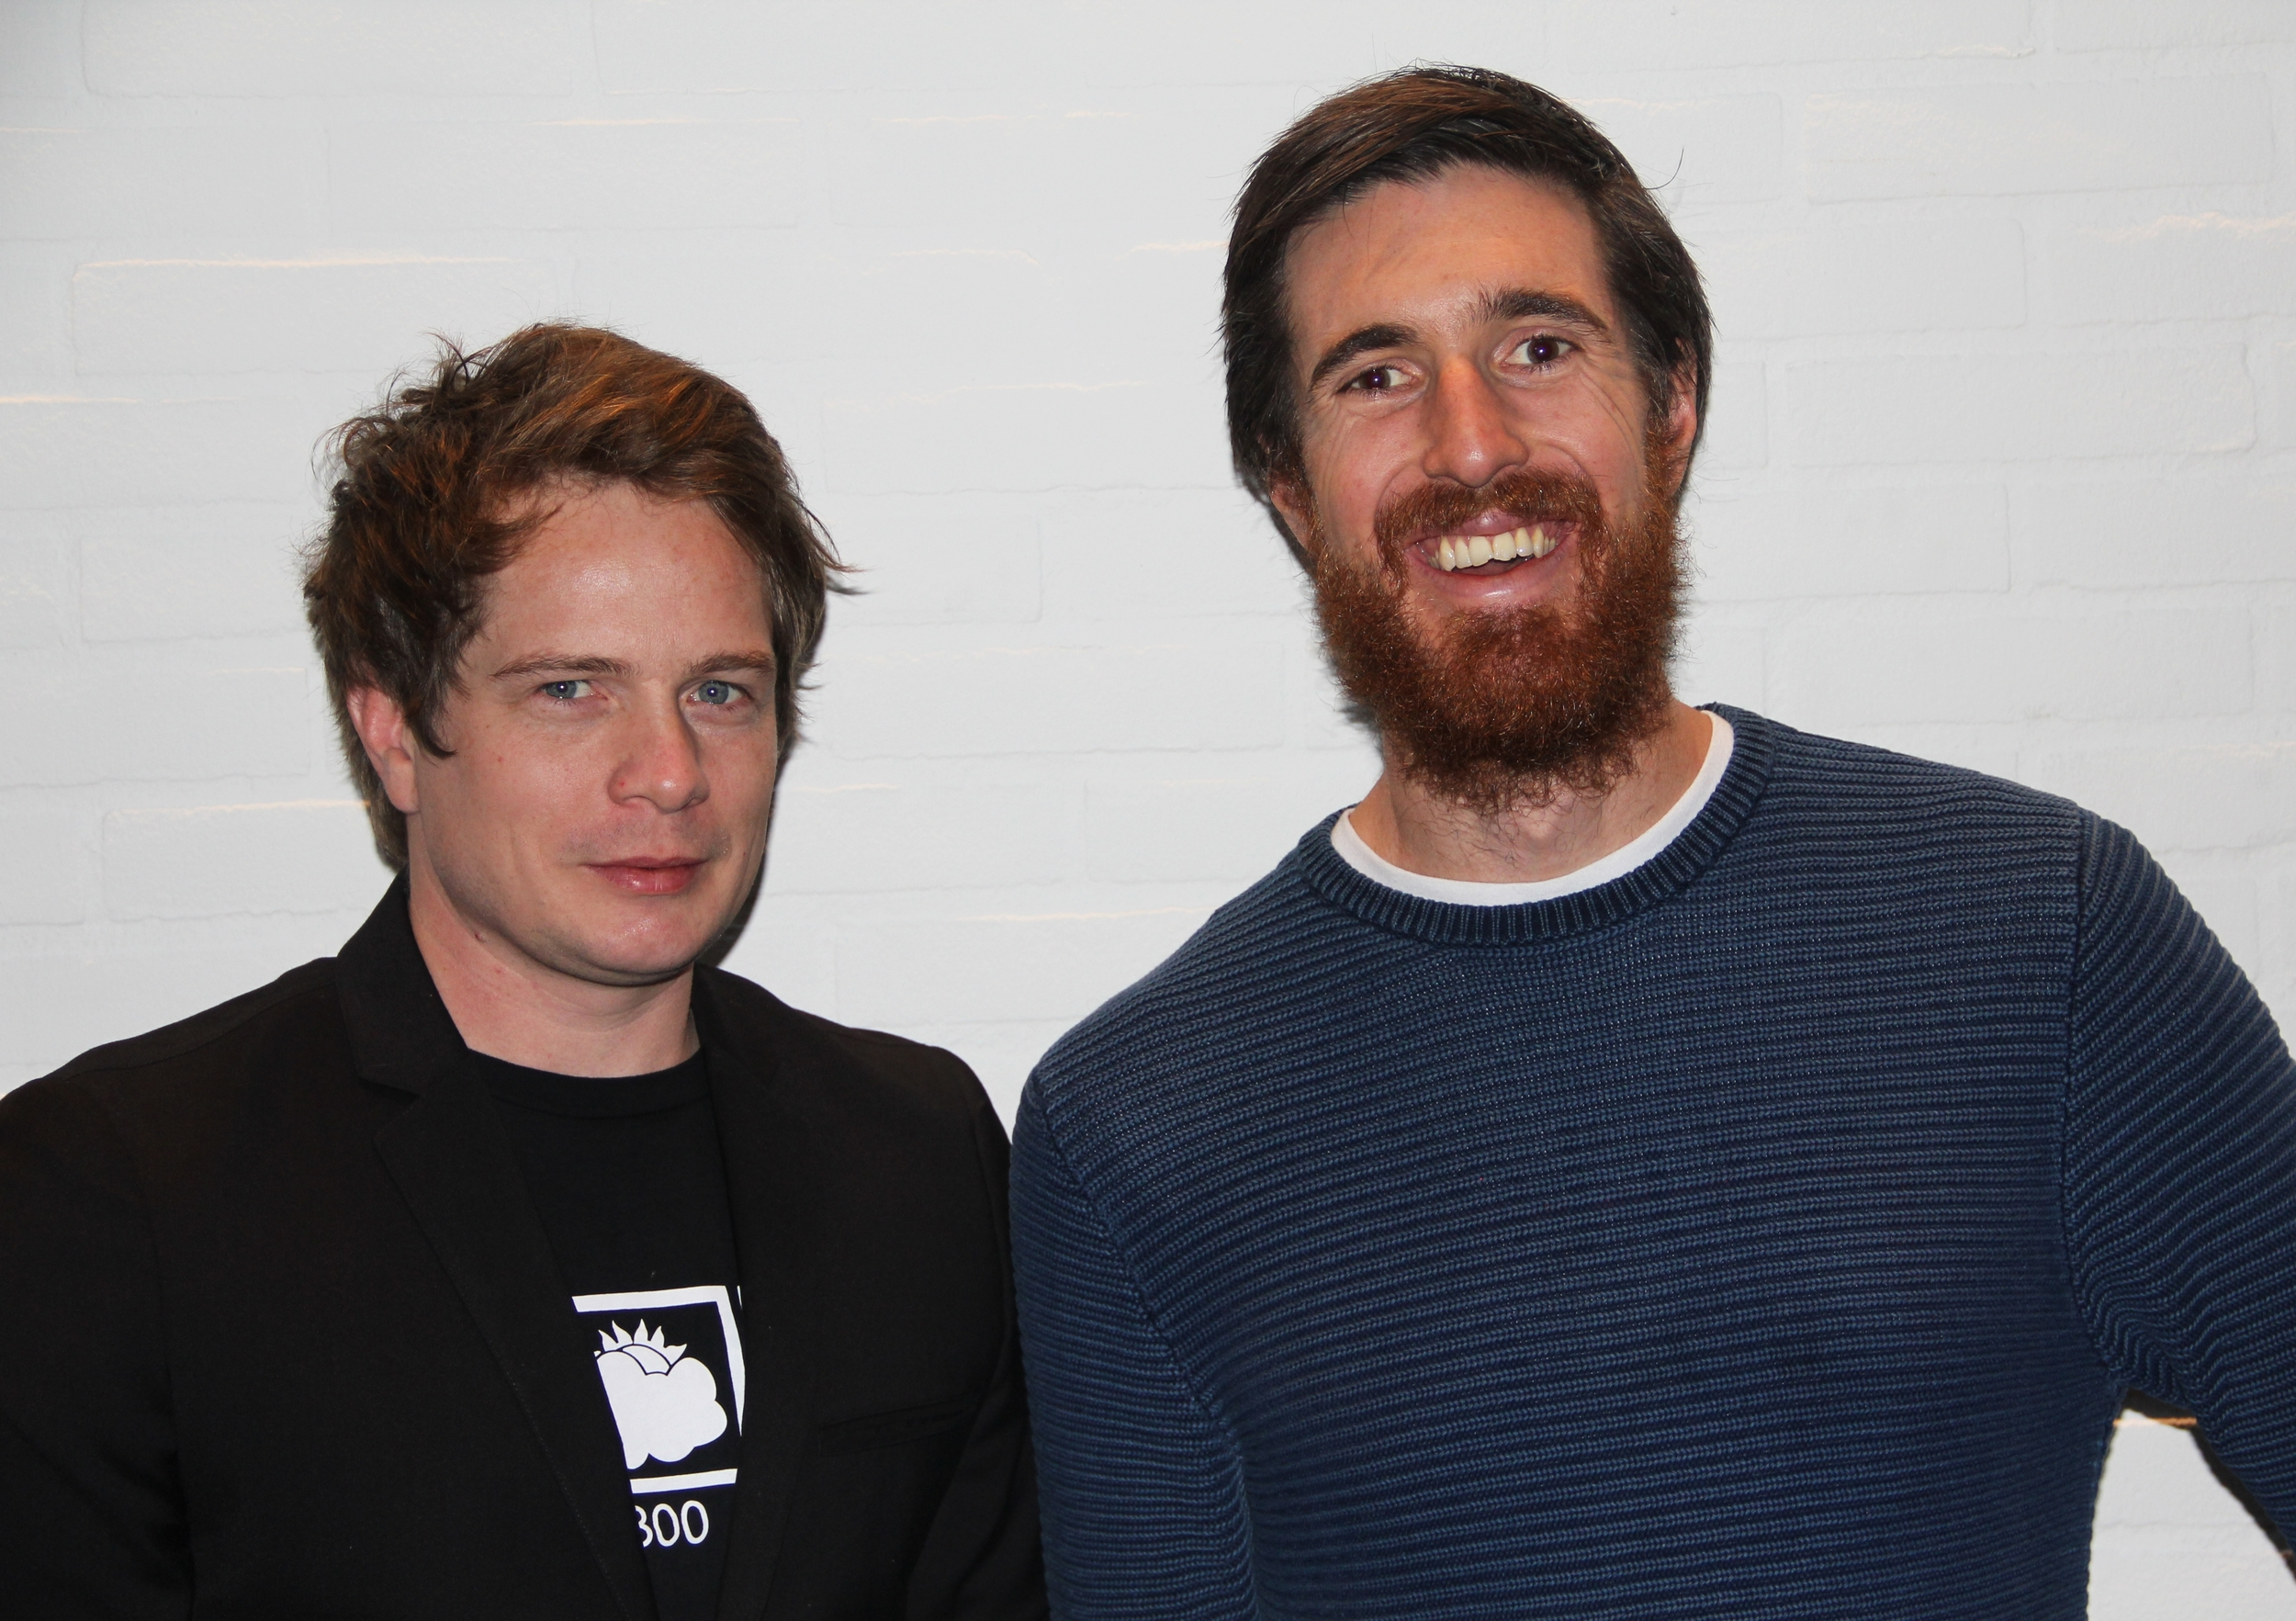 Isaac and Abel Founder Dave